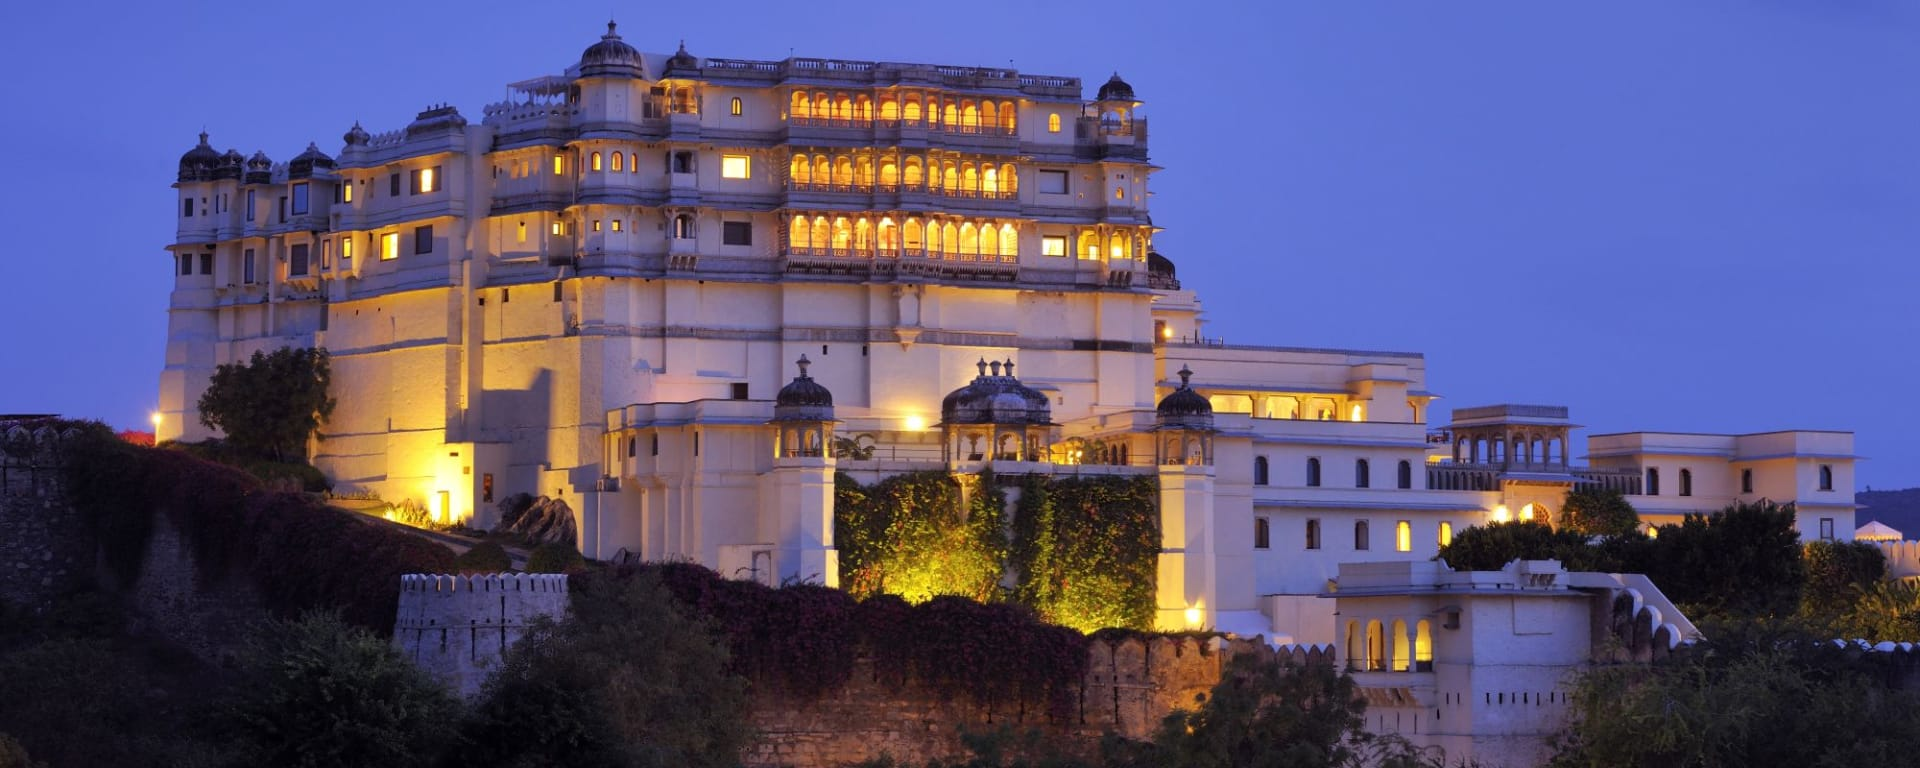 RAAS Devigarh à Udaipur: Shot From Afar at Night Time